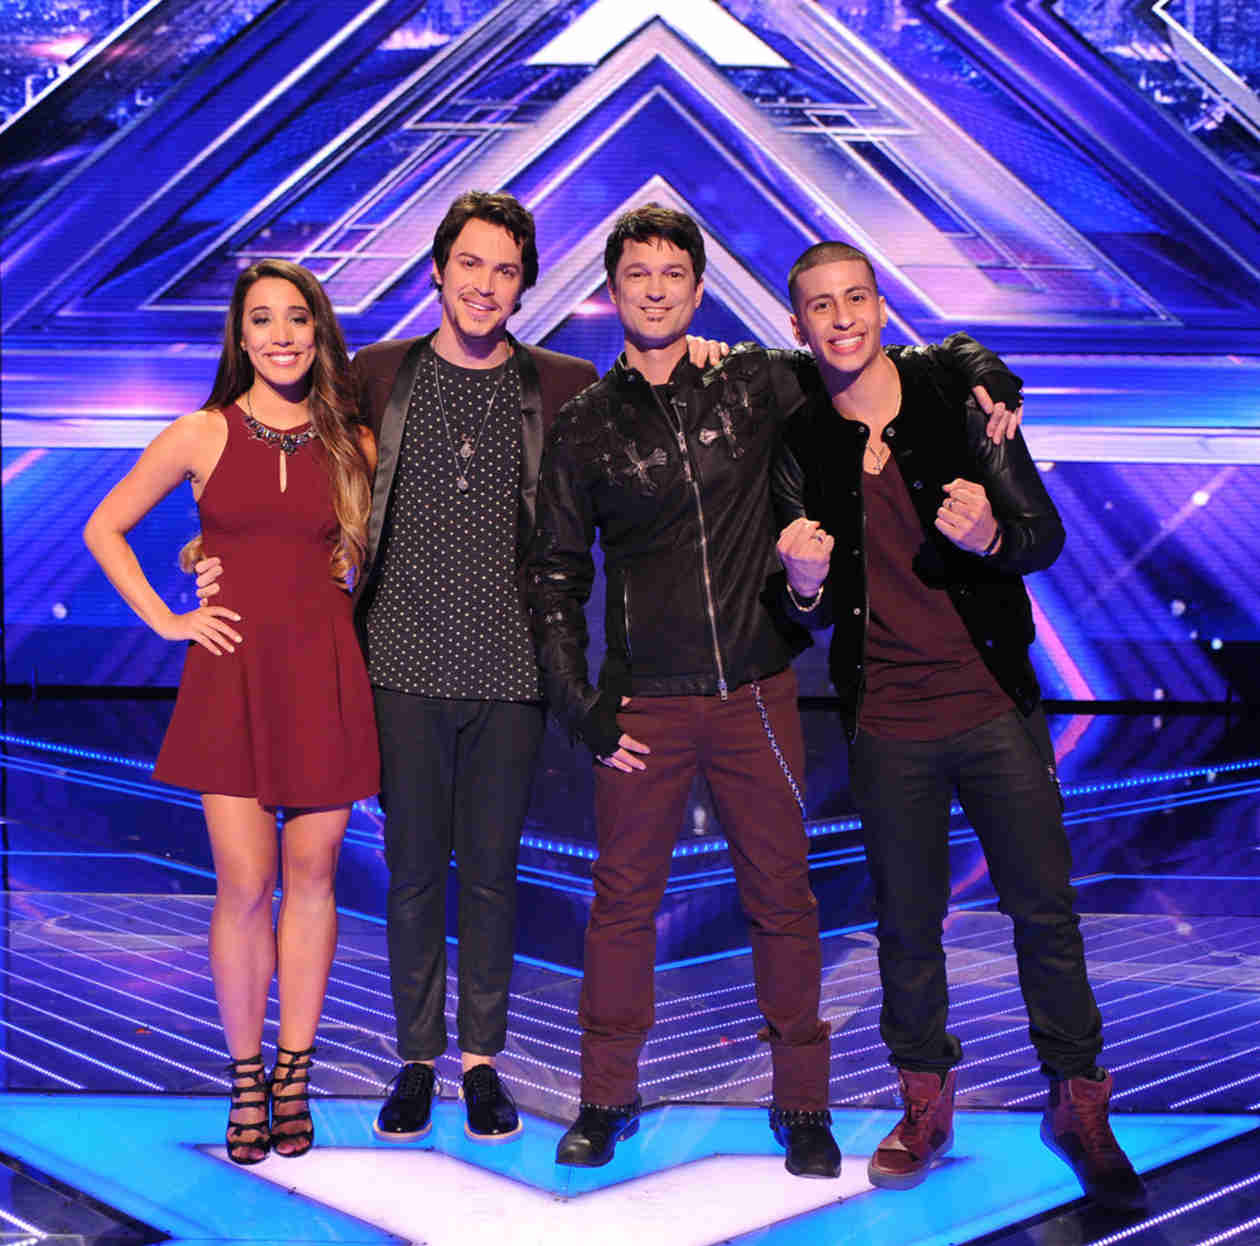 Who Should Win The X Factor 2013?